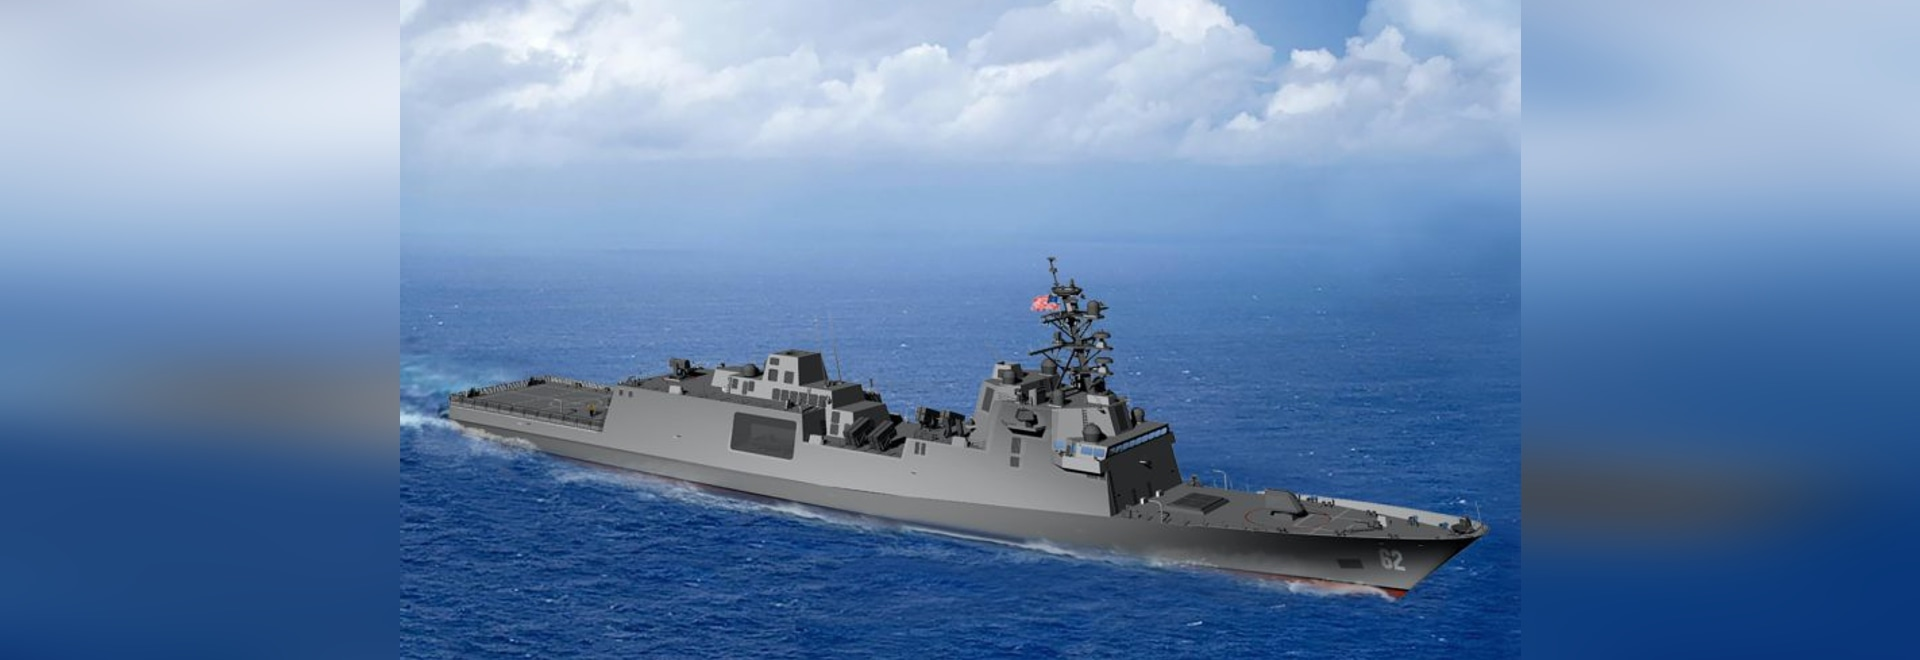 The contract offers FMM the option to build and deliver up to 10 guided missile frigates fro the Navy.